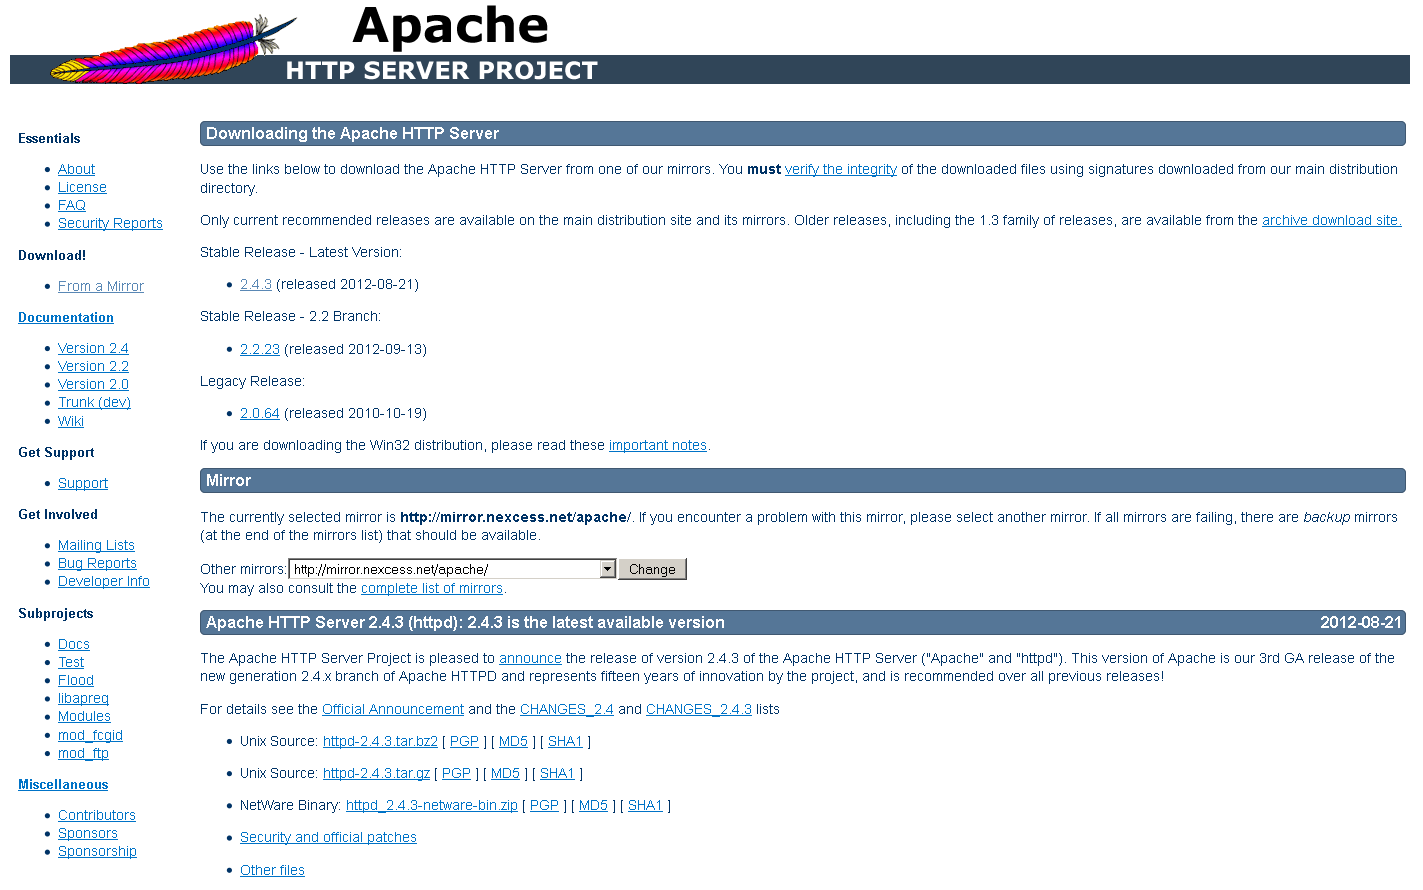 Apache Foundation download page